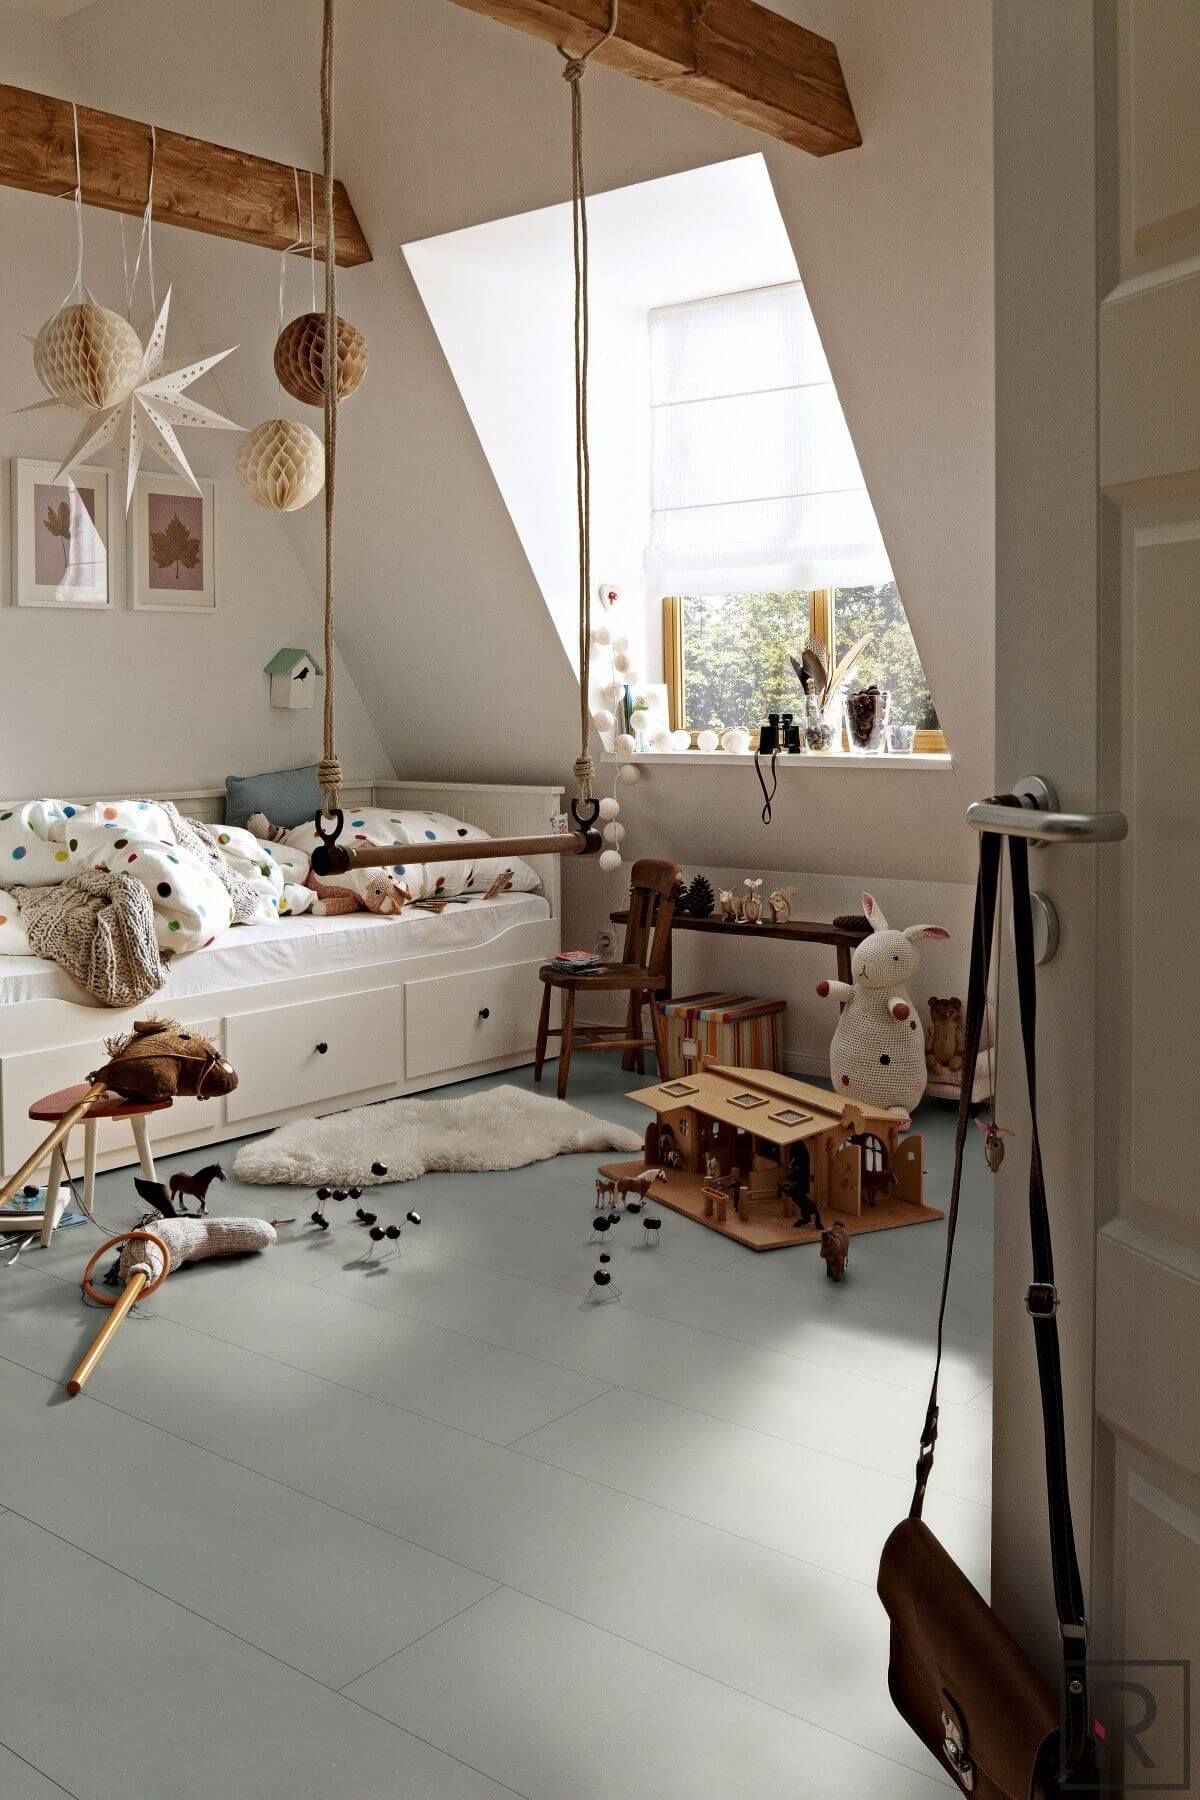 5 great ideas for unique and natural children\'s rooms ...